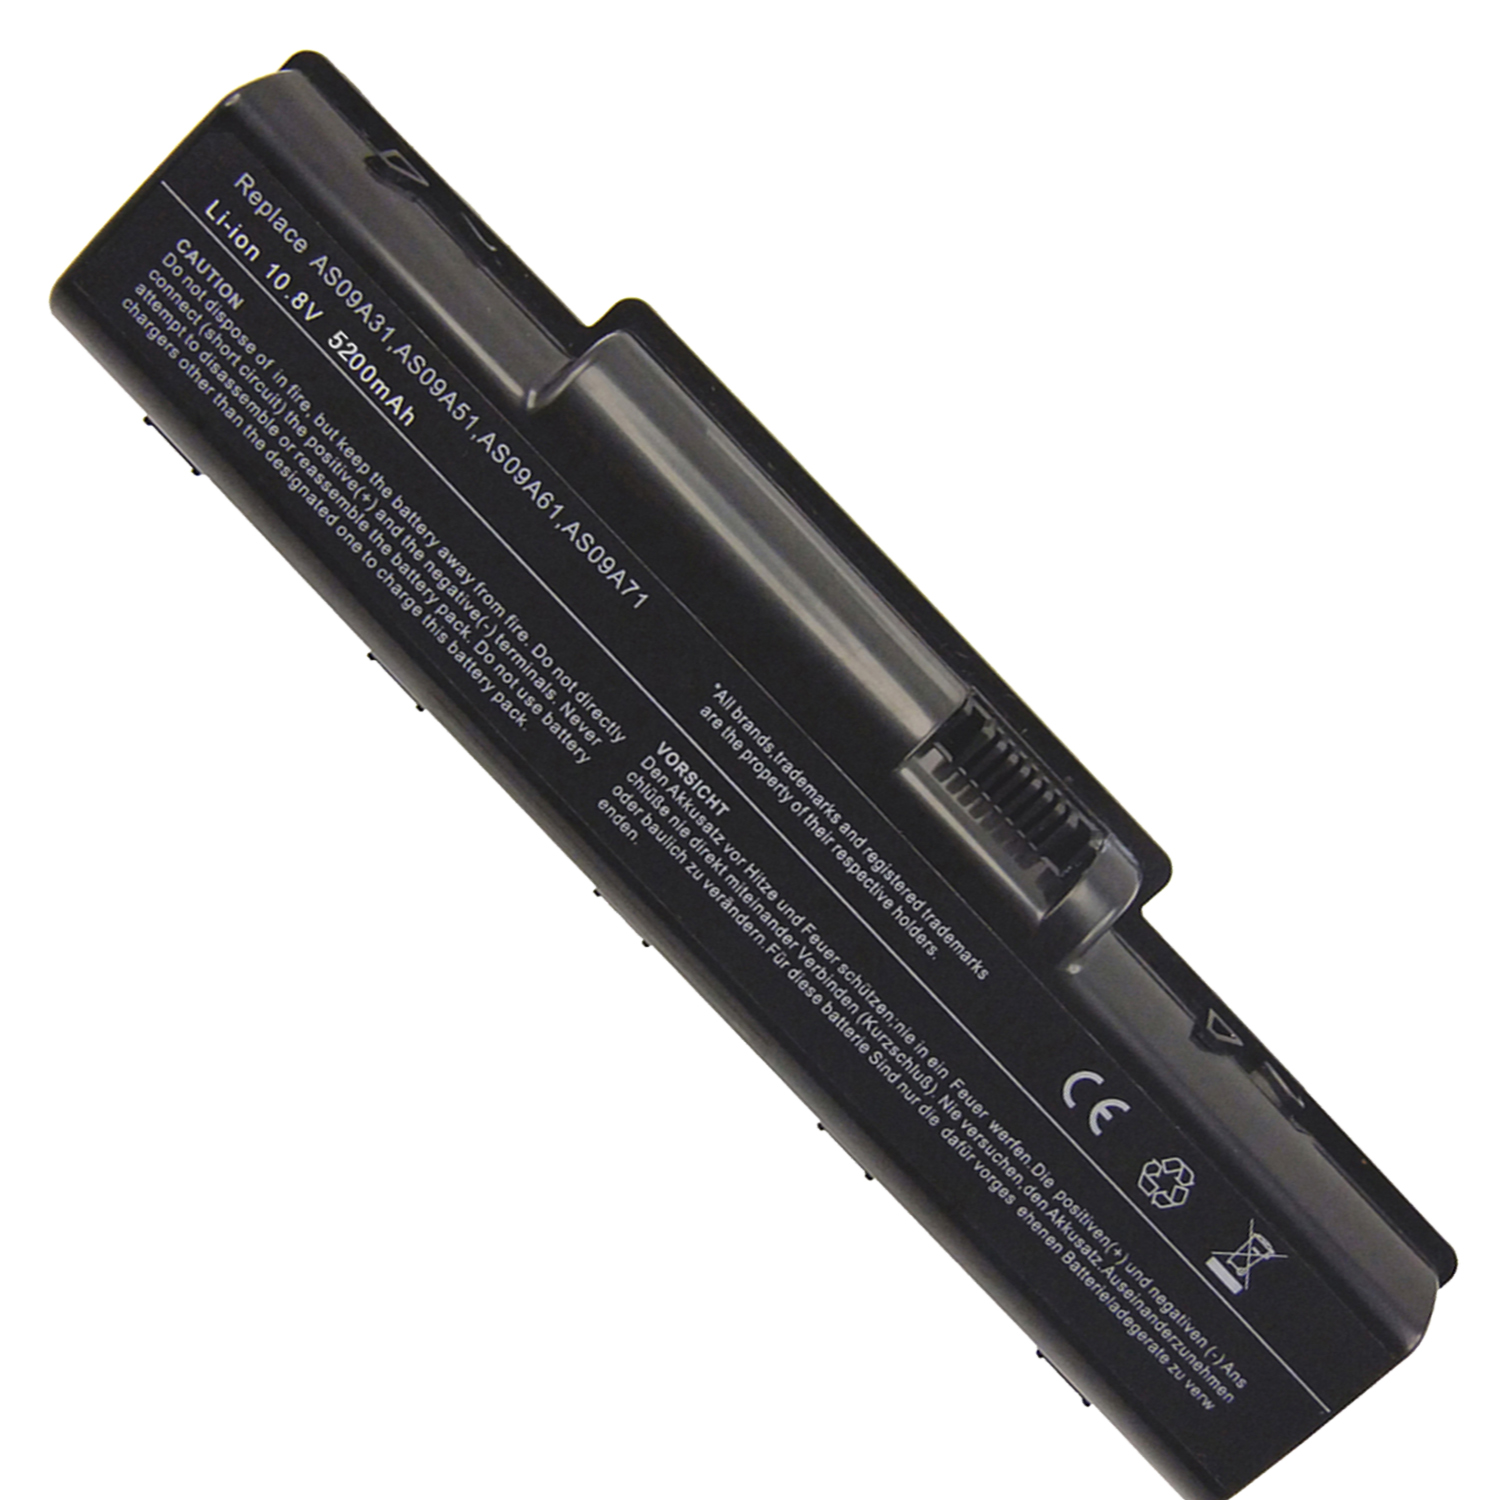 New Battery Laptop Acer Aspire 4732 4732z 5732 5732z As09a31 As09a41 Baterai Batre Batery Ori 4332 5516 5517 5532 5532z 5541 As09a71 As09a51 Original For 5332